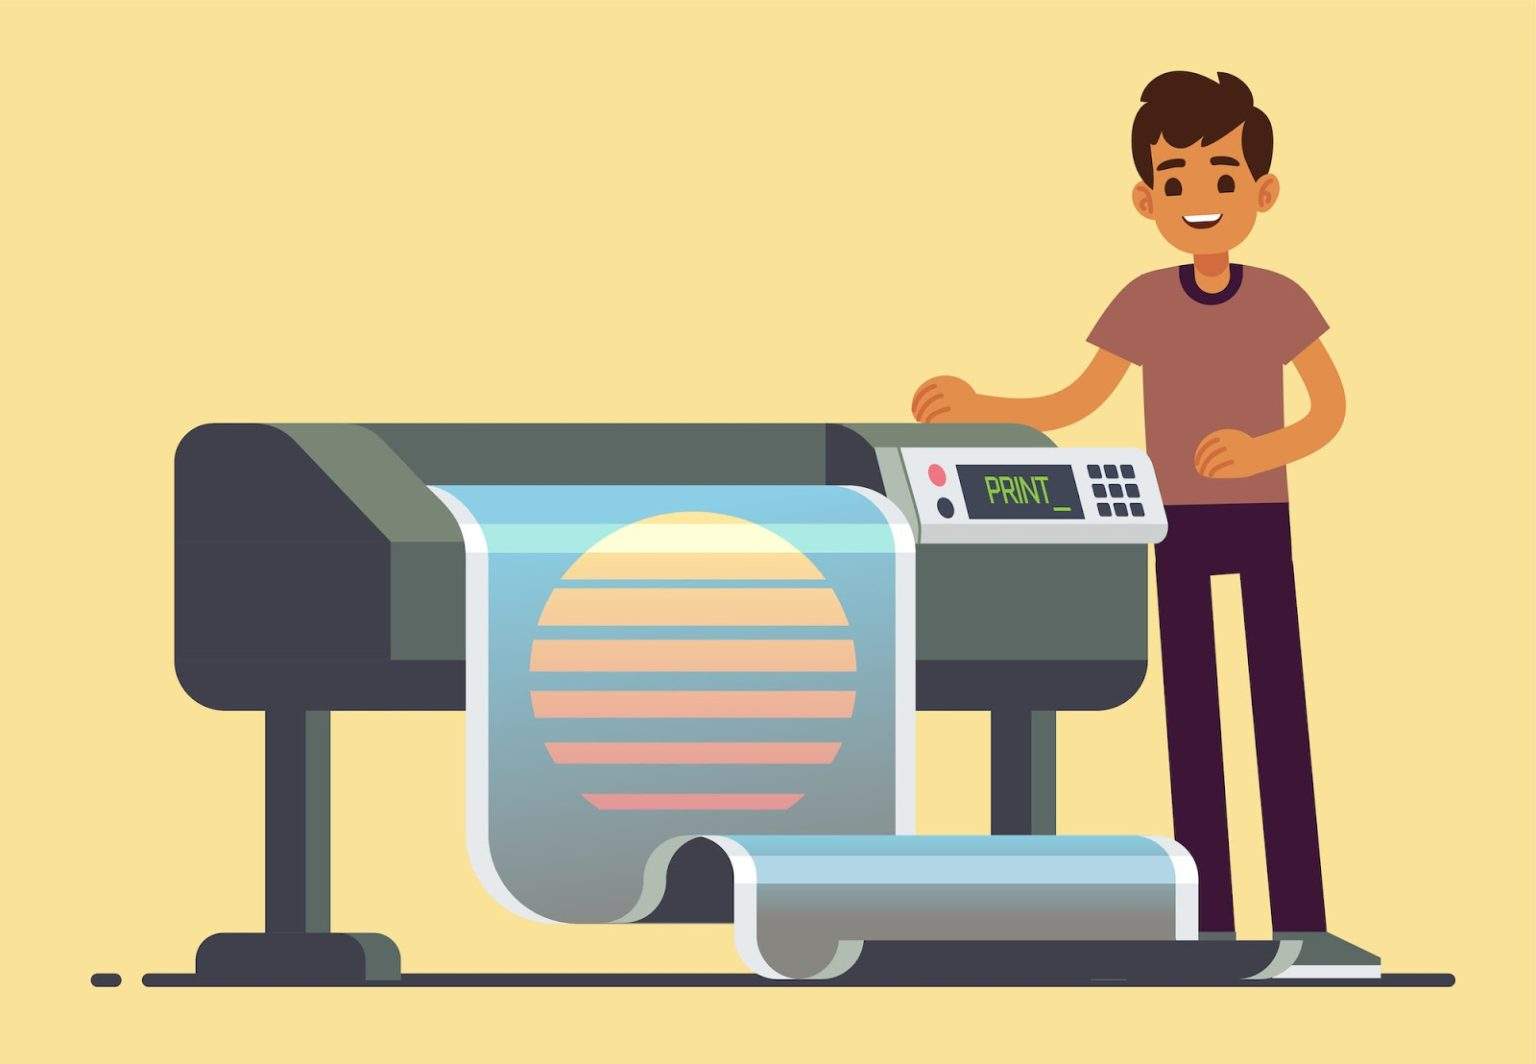 A young man using a wide-format printer to create posters of a sun design